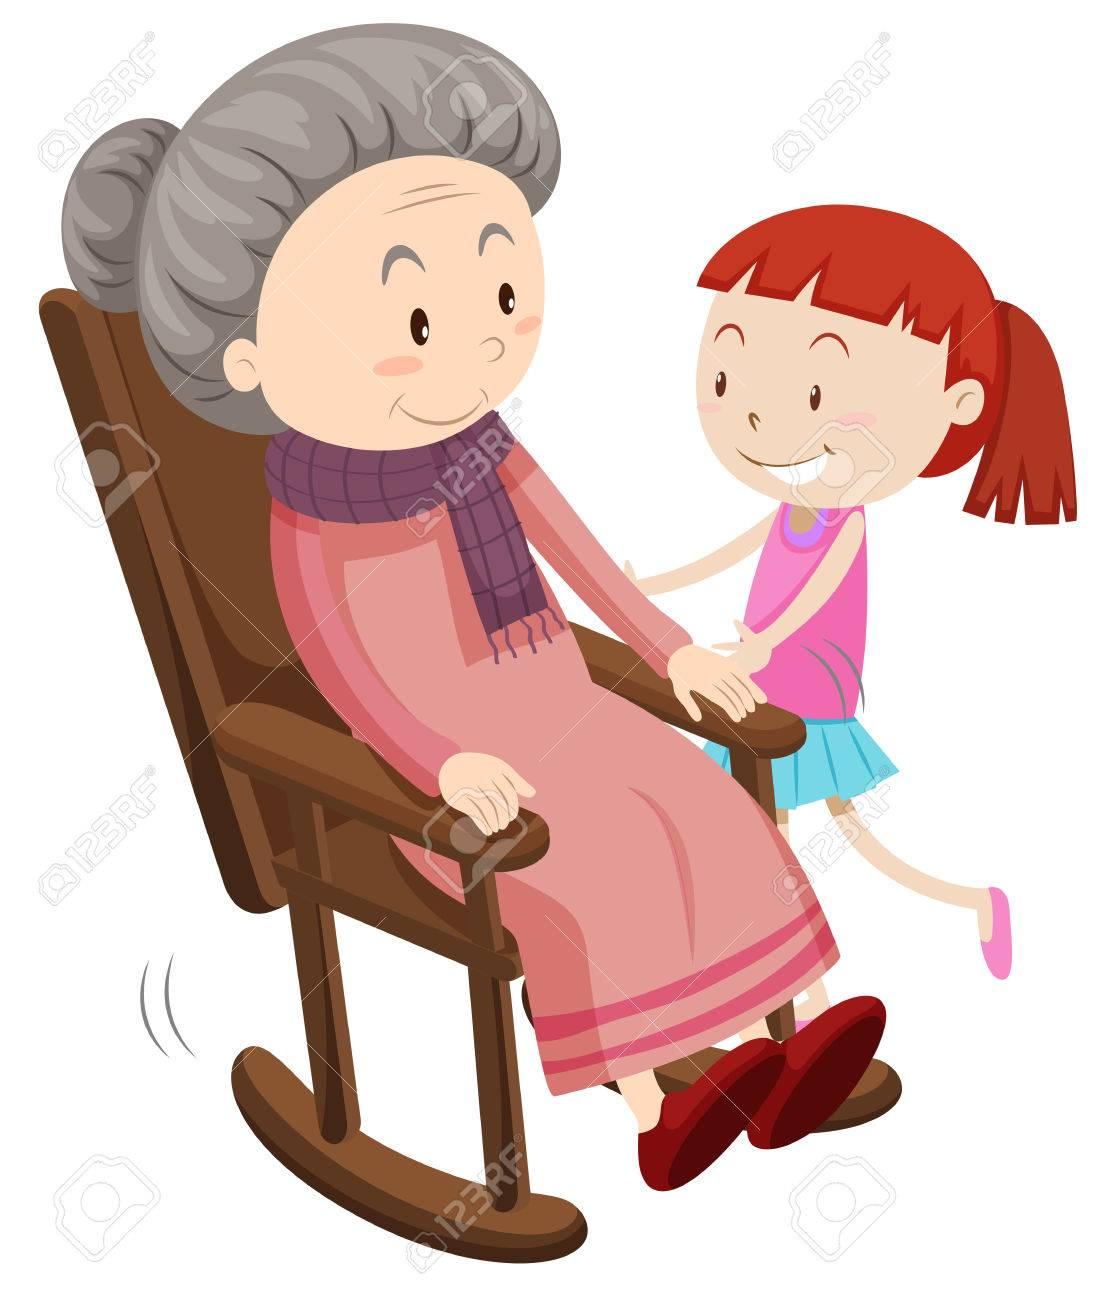 Grandmother on the rocking chair and girl illustration - 53749012